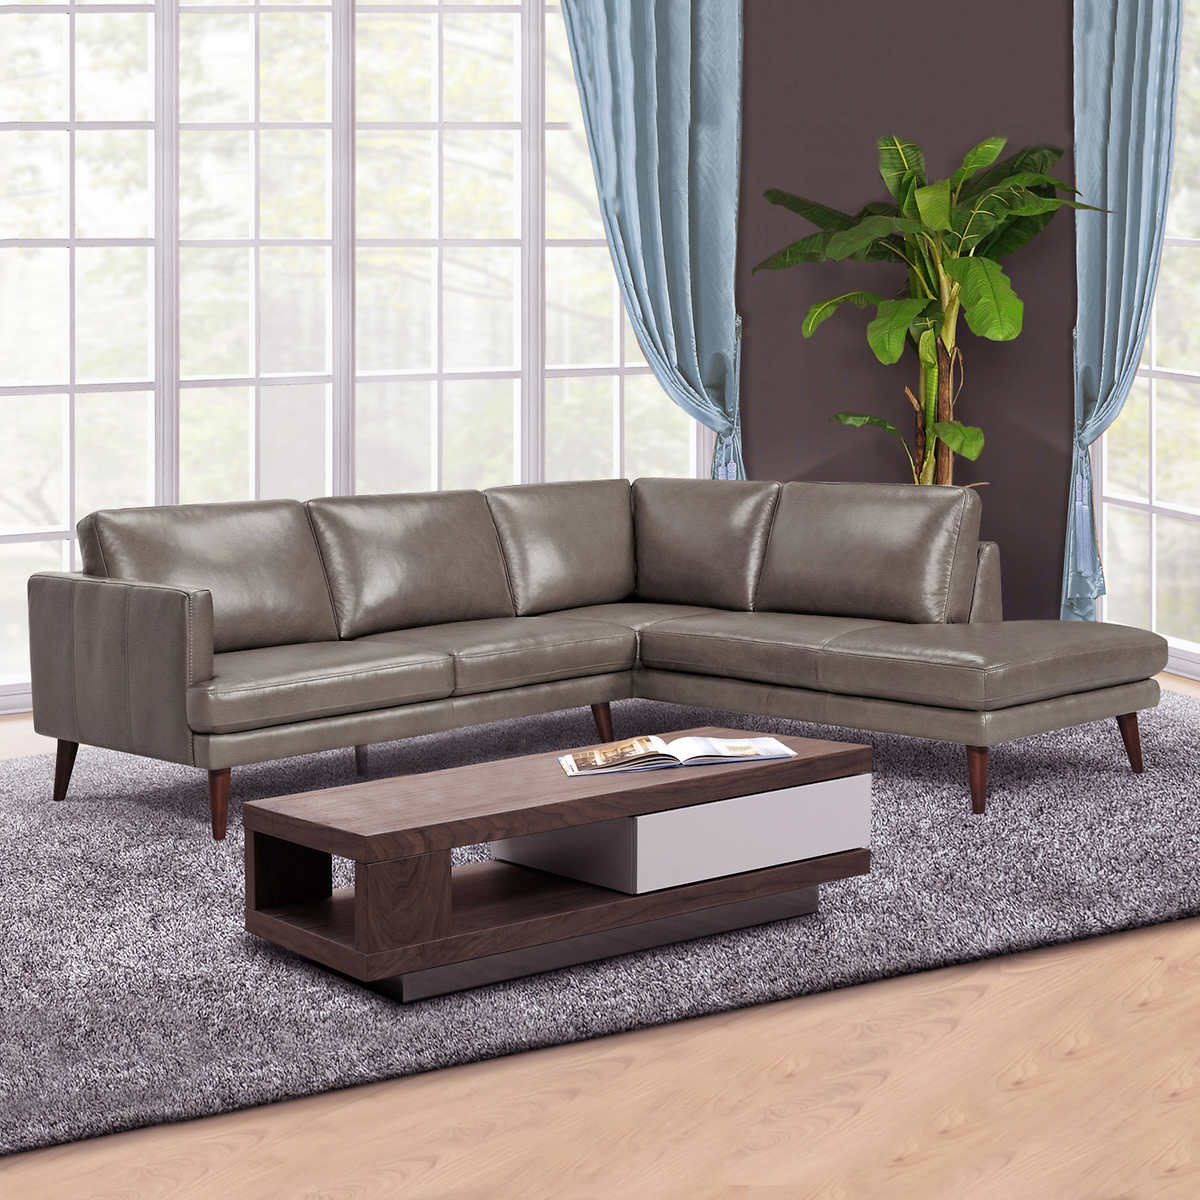 Leather Living Room Sectionals Raton Right Hand Facing Top Grain Leather Living Room Sectional